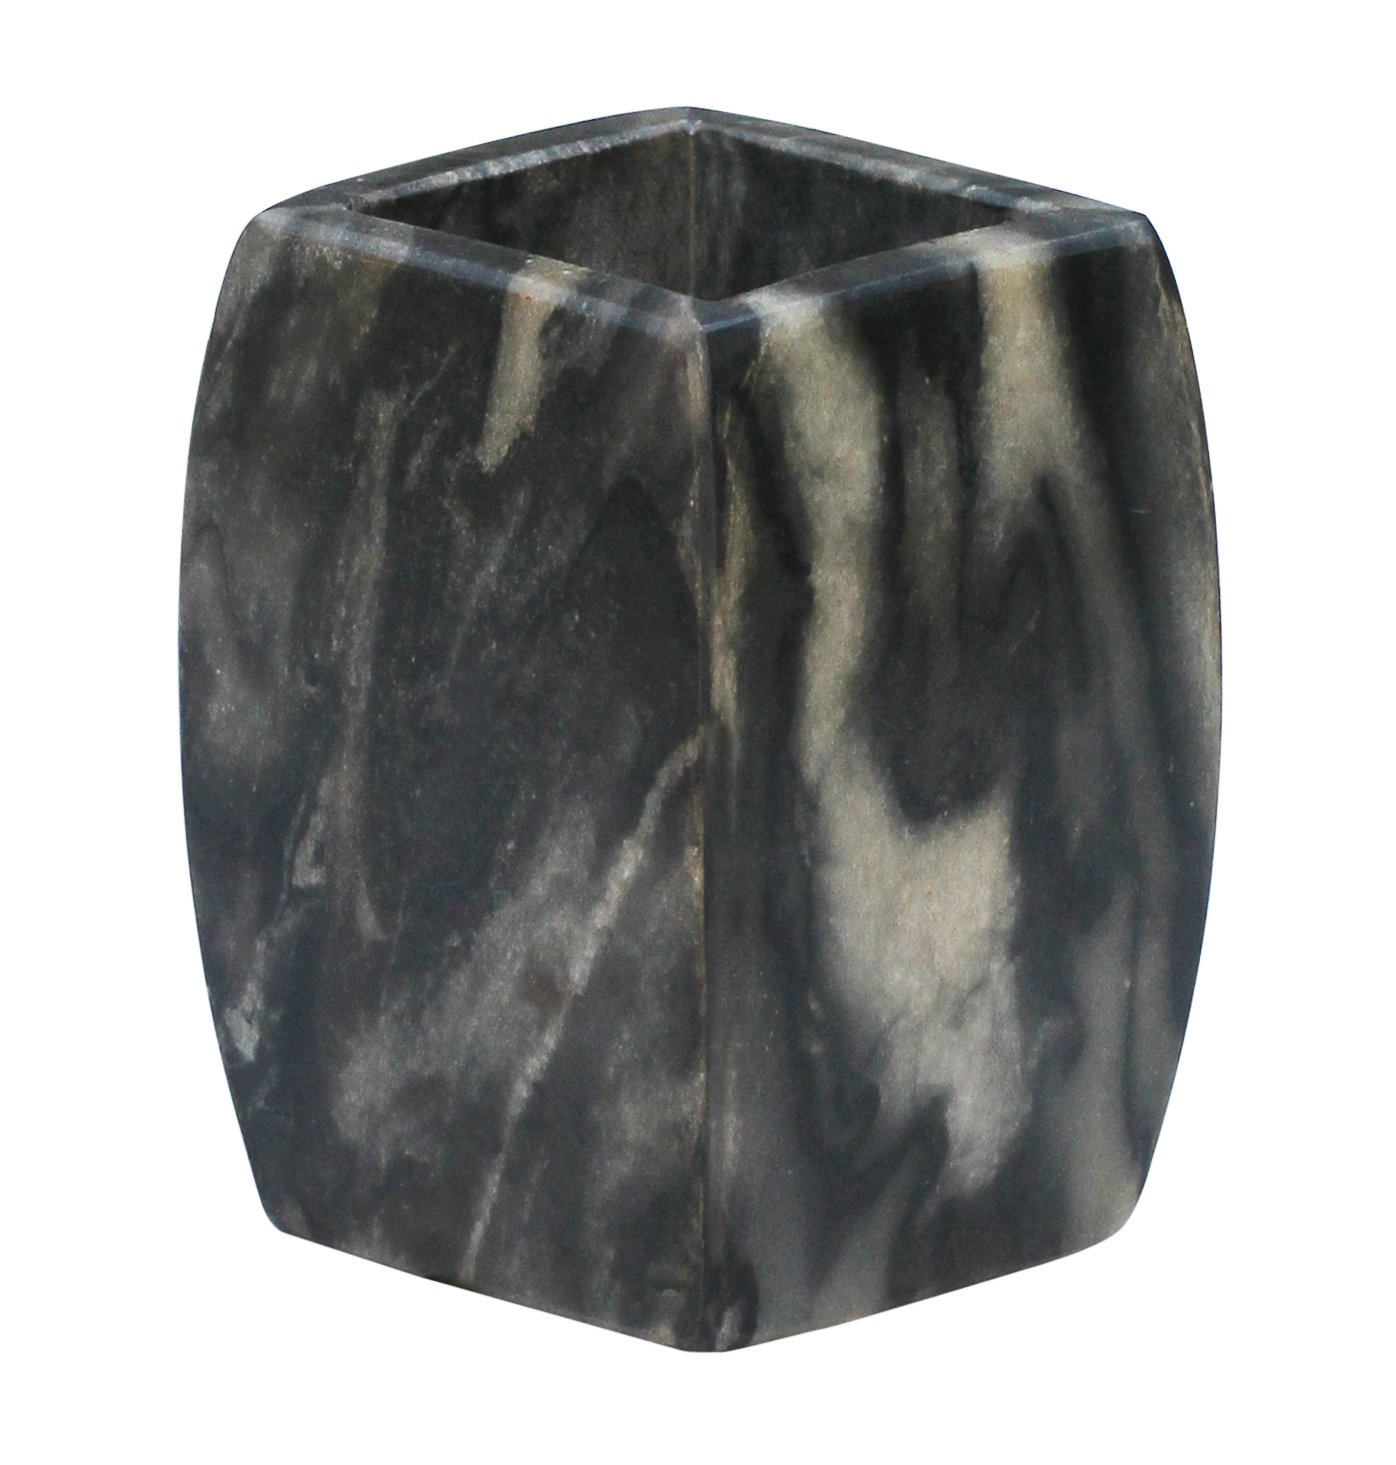 ... 5.3 Inch Stone Art Unique Minimalistic Solid Soap Dish Holder In  Oceanic Grey   Black Marble   Kitchen Sink / Bathroom Accessories: Home U0026  Kitchen